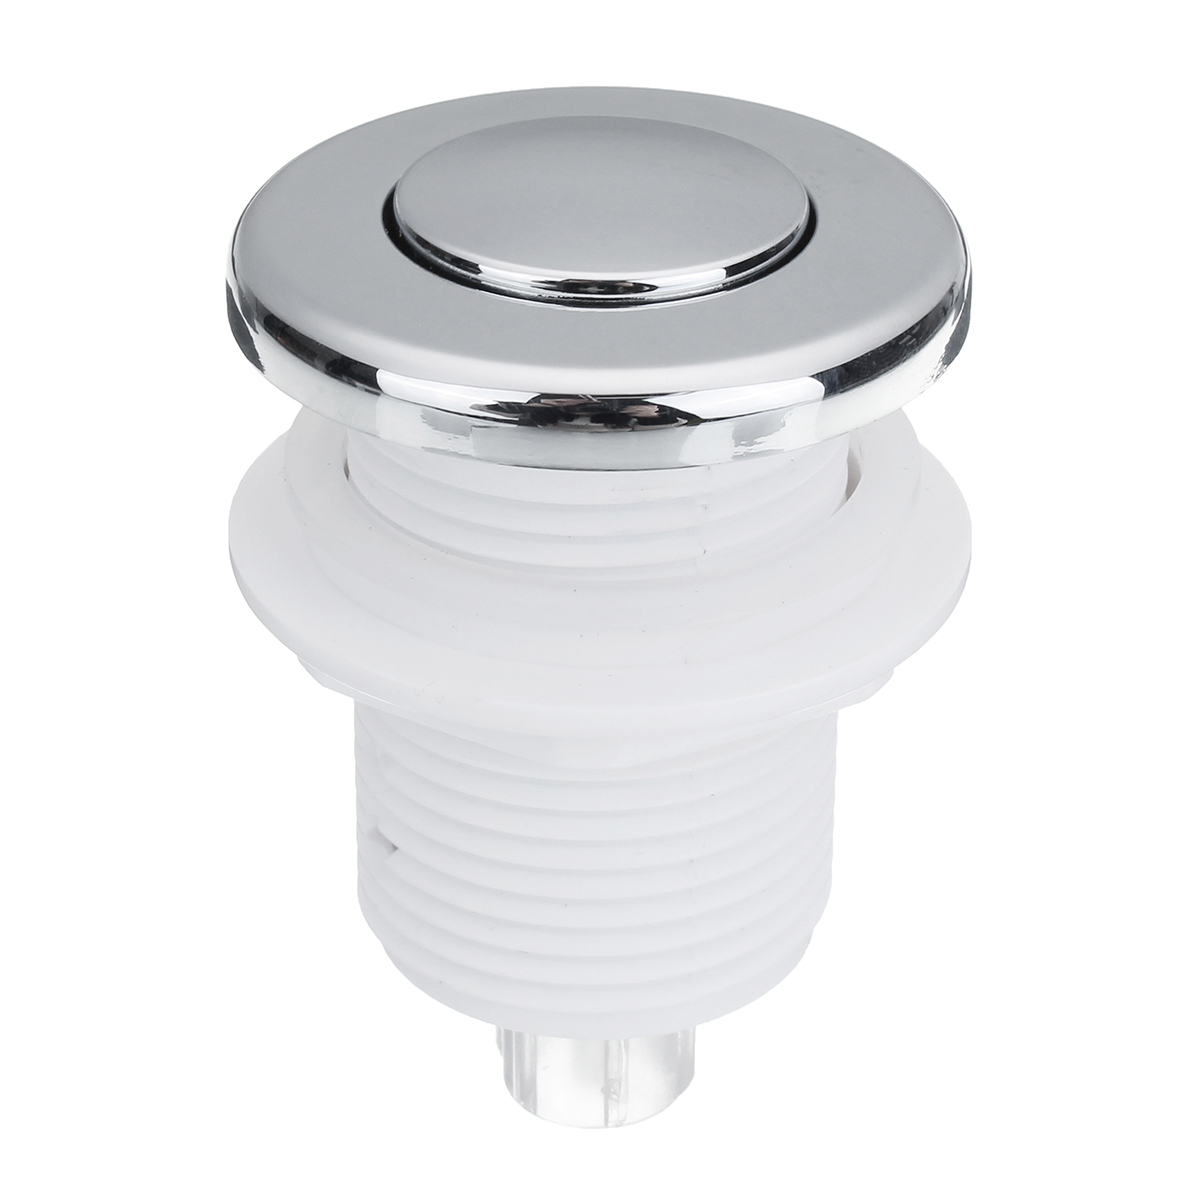 32mm Air Switch On Off Push Button For Bathtub Spa Garbage Whirlpool Pneumatic Micro Switch Toggle Electronic Home Kit